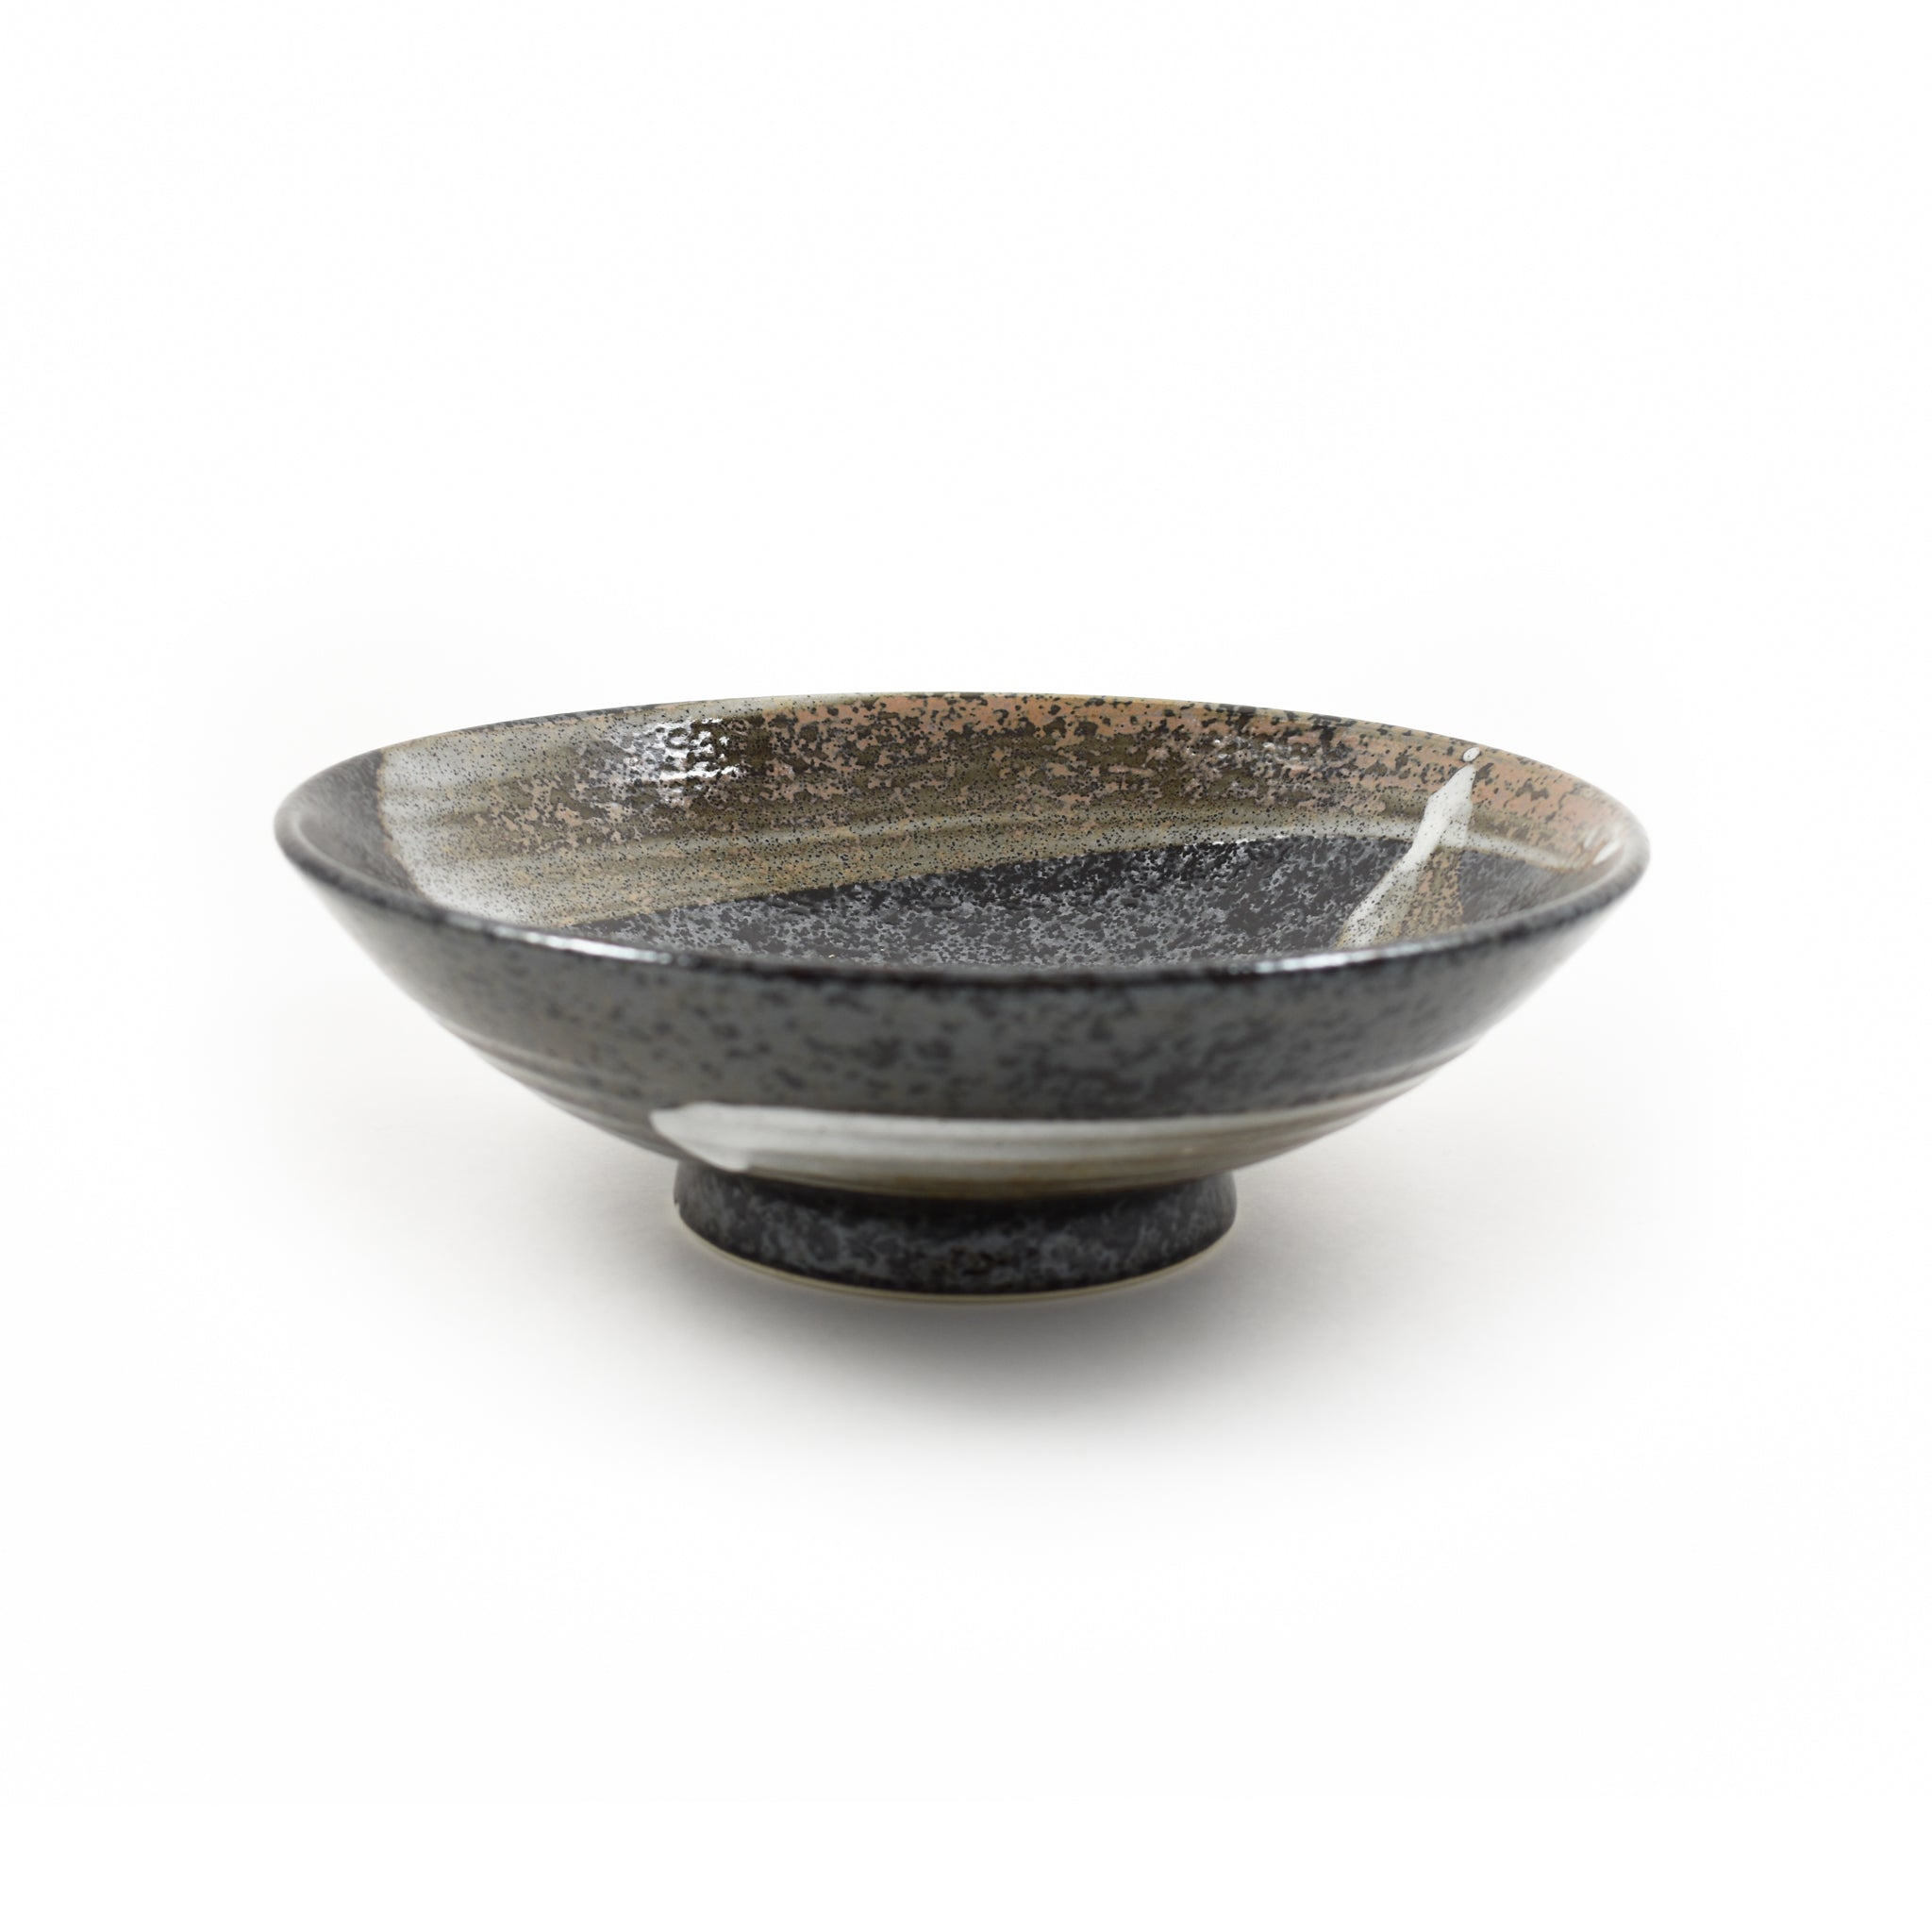 Kiji Stoneware & Ceramics Karasuba-Iro Shallow Bowl 25cm Tableware Japanese Tableware Japanese Food